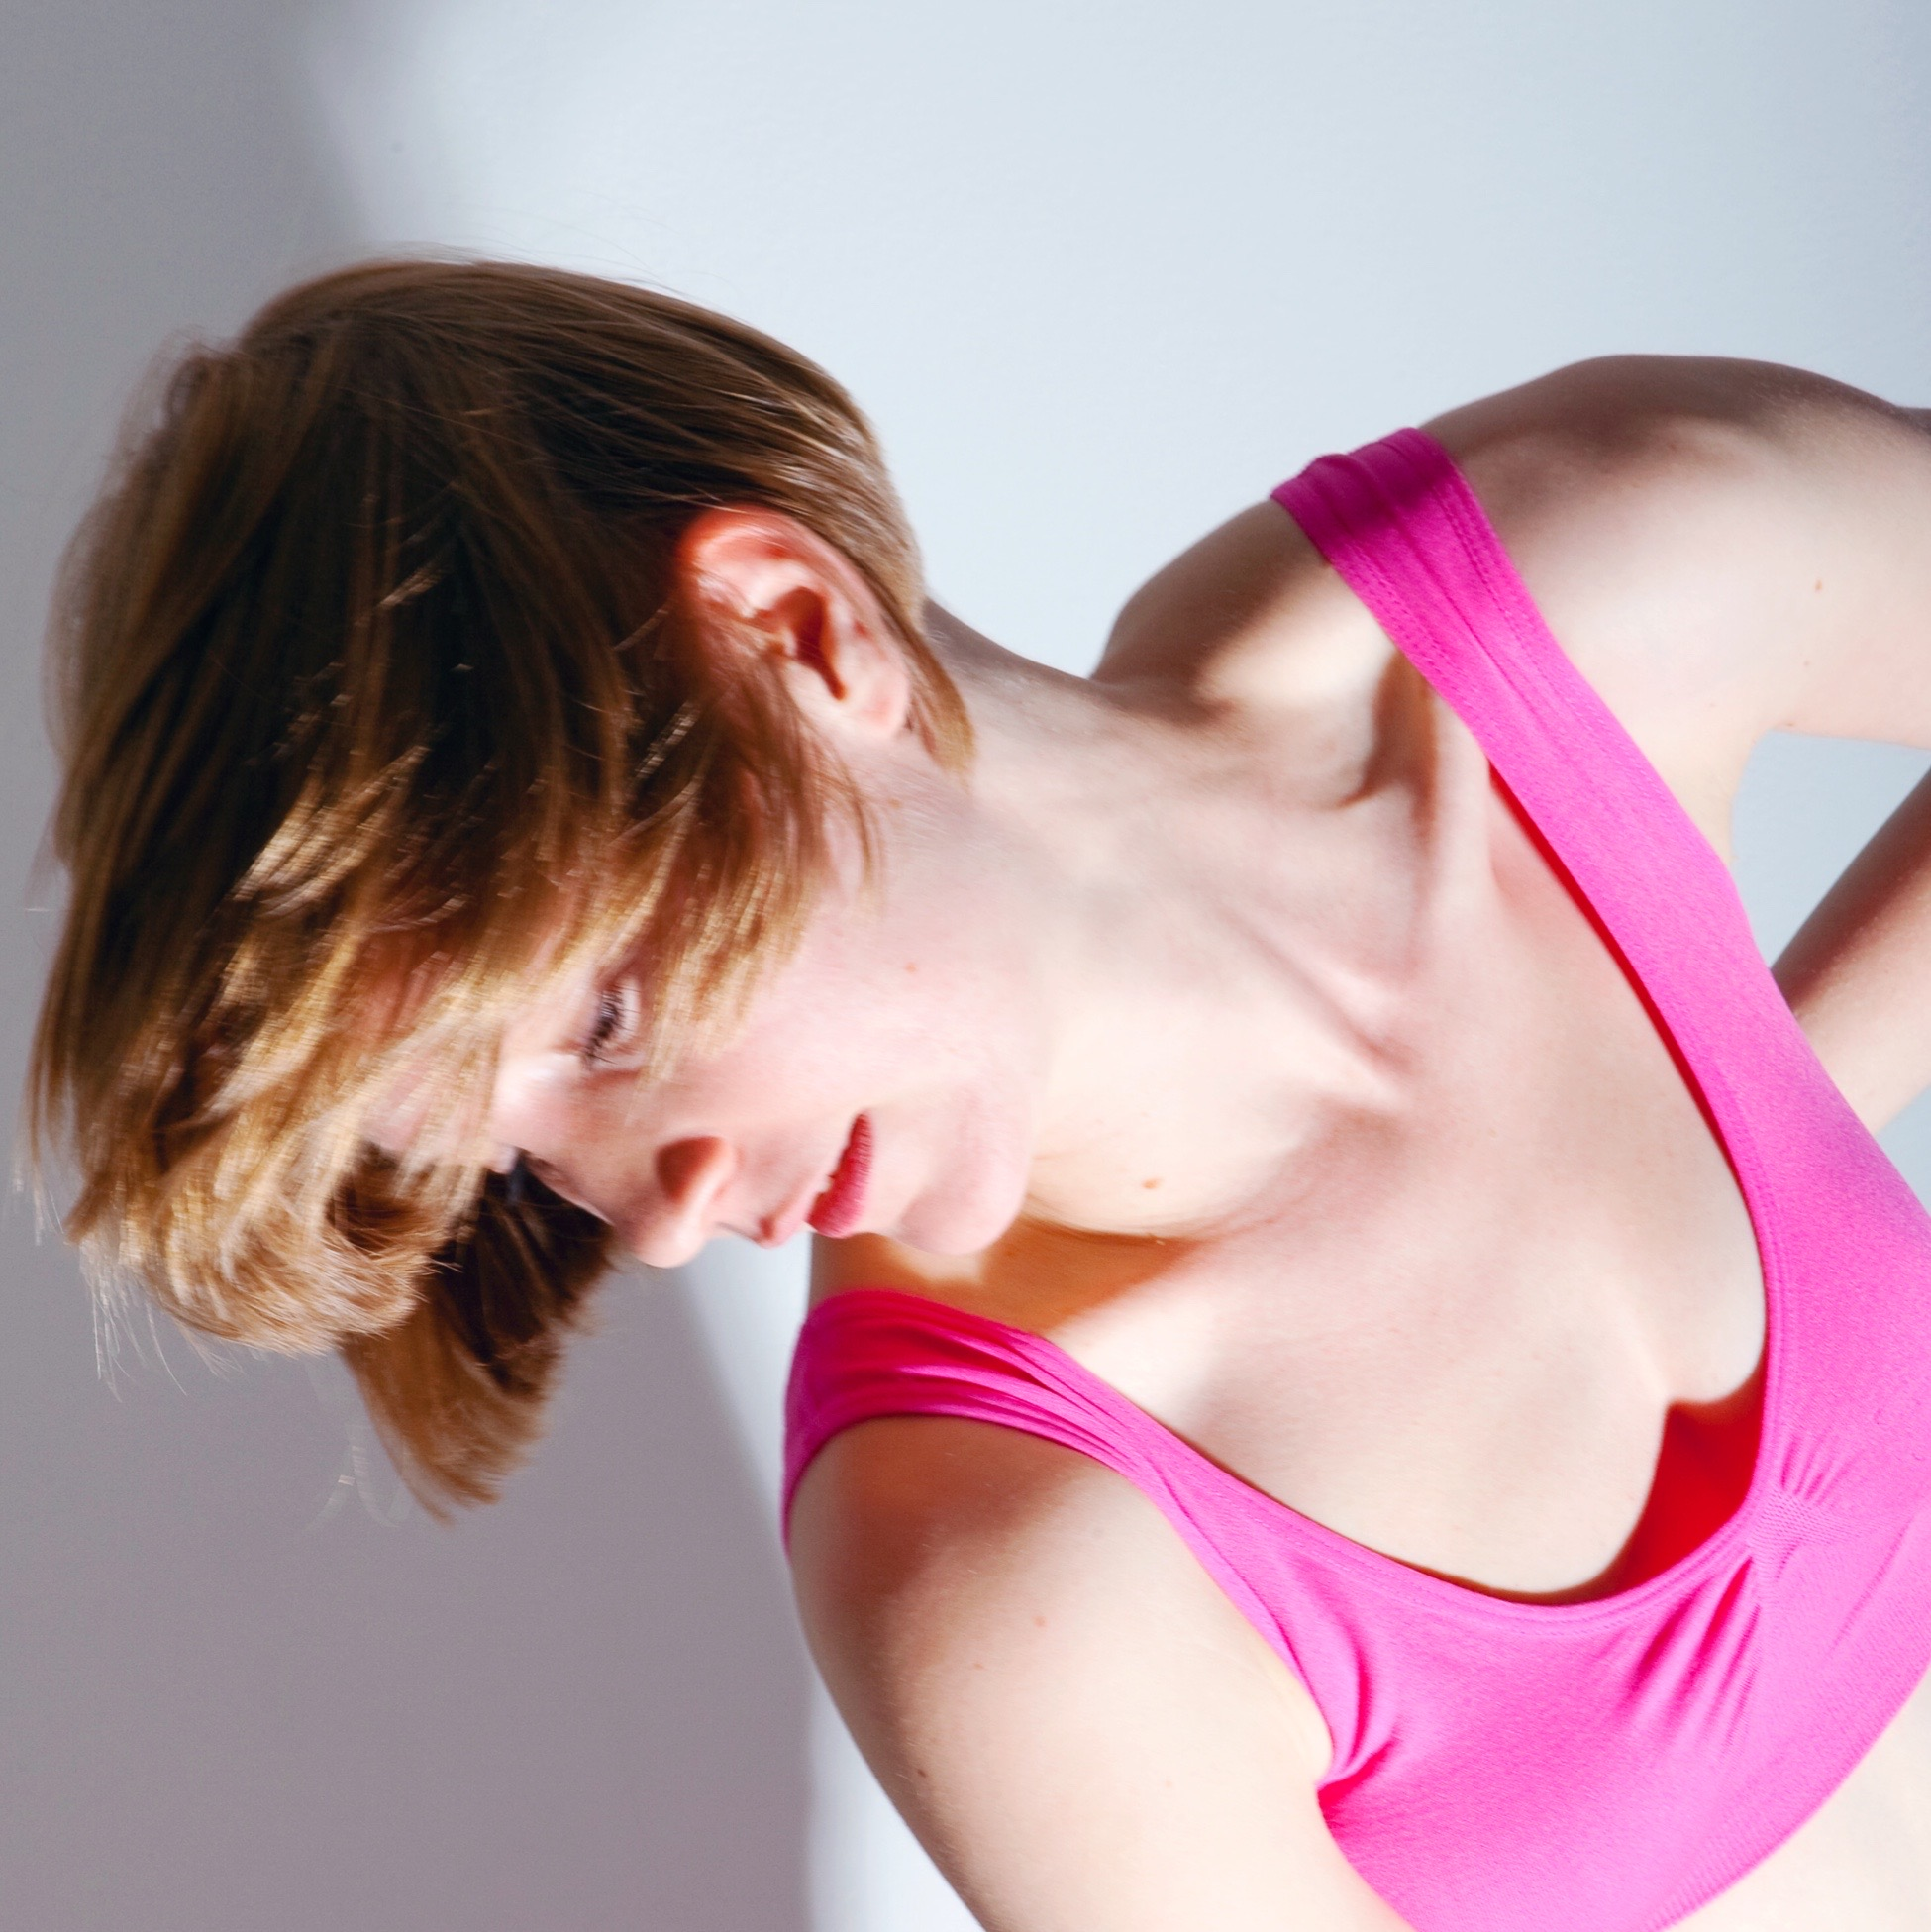 Photo of a dancer leaning to left hand side of the image, wearing a bright pink crop top.